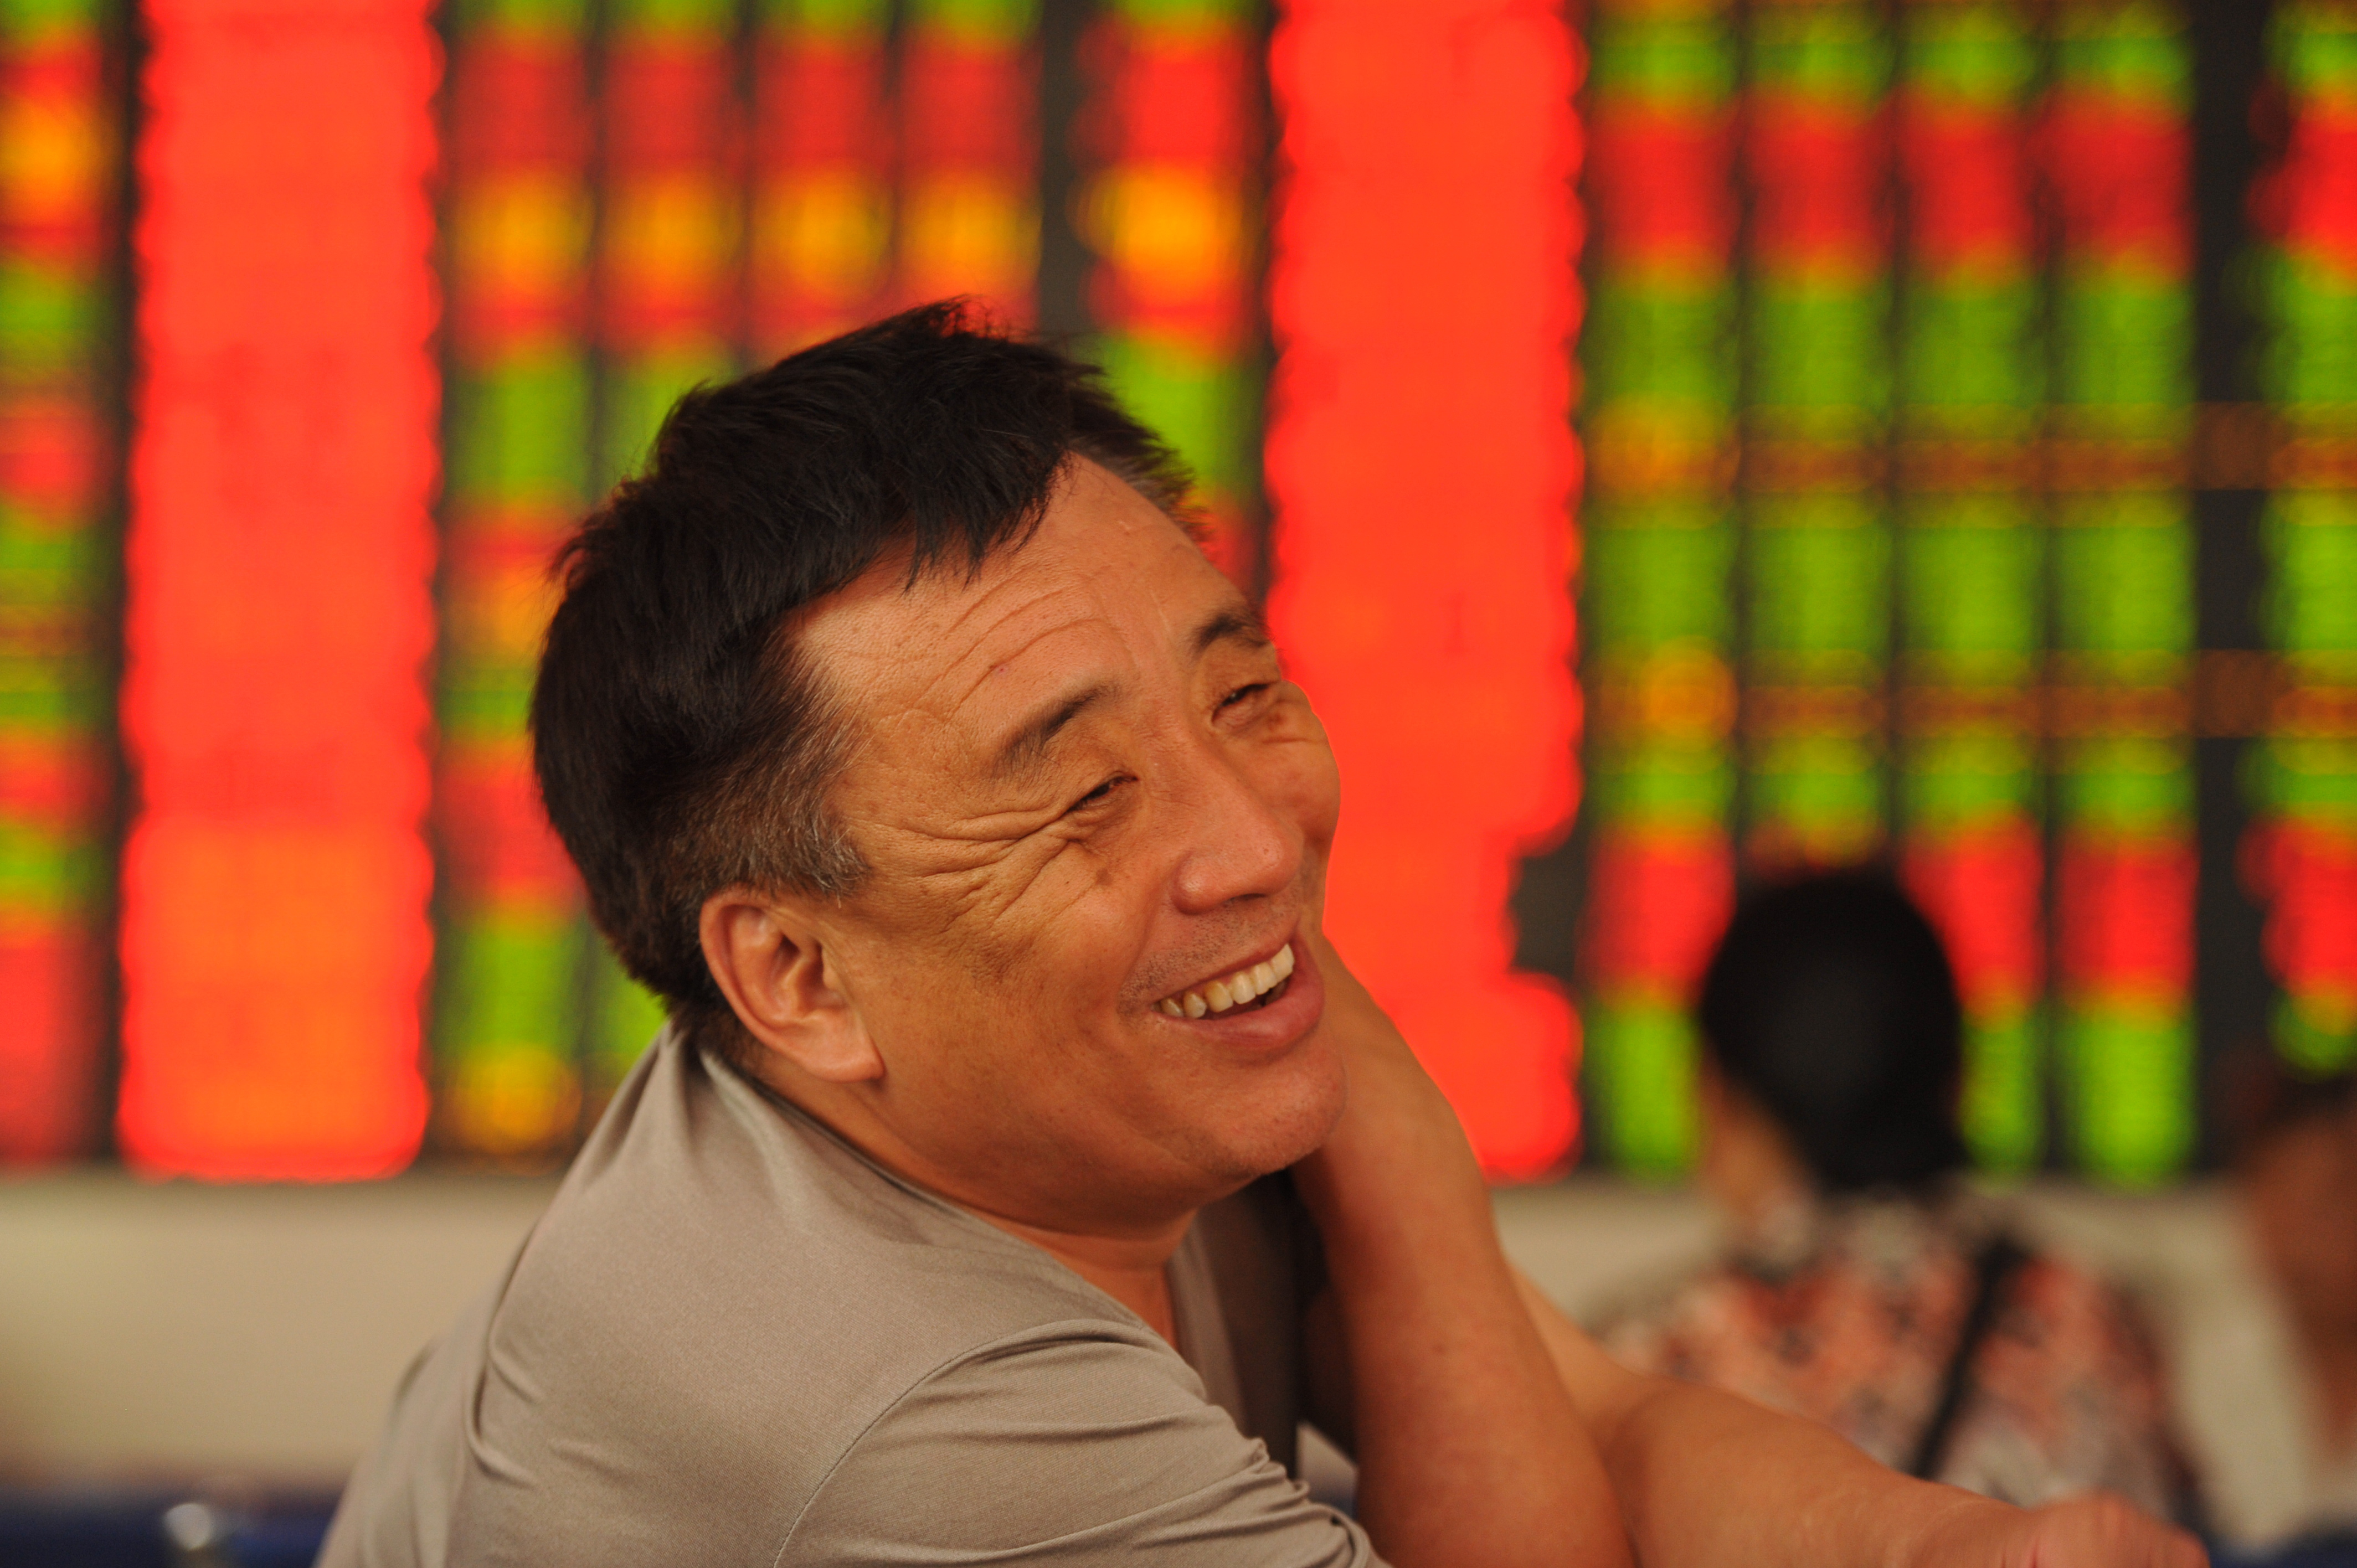 Shanghai Composite Index Reaches Above 3,000 Points On Tuesday